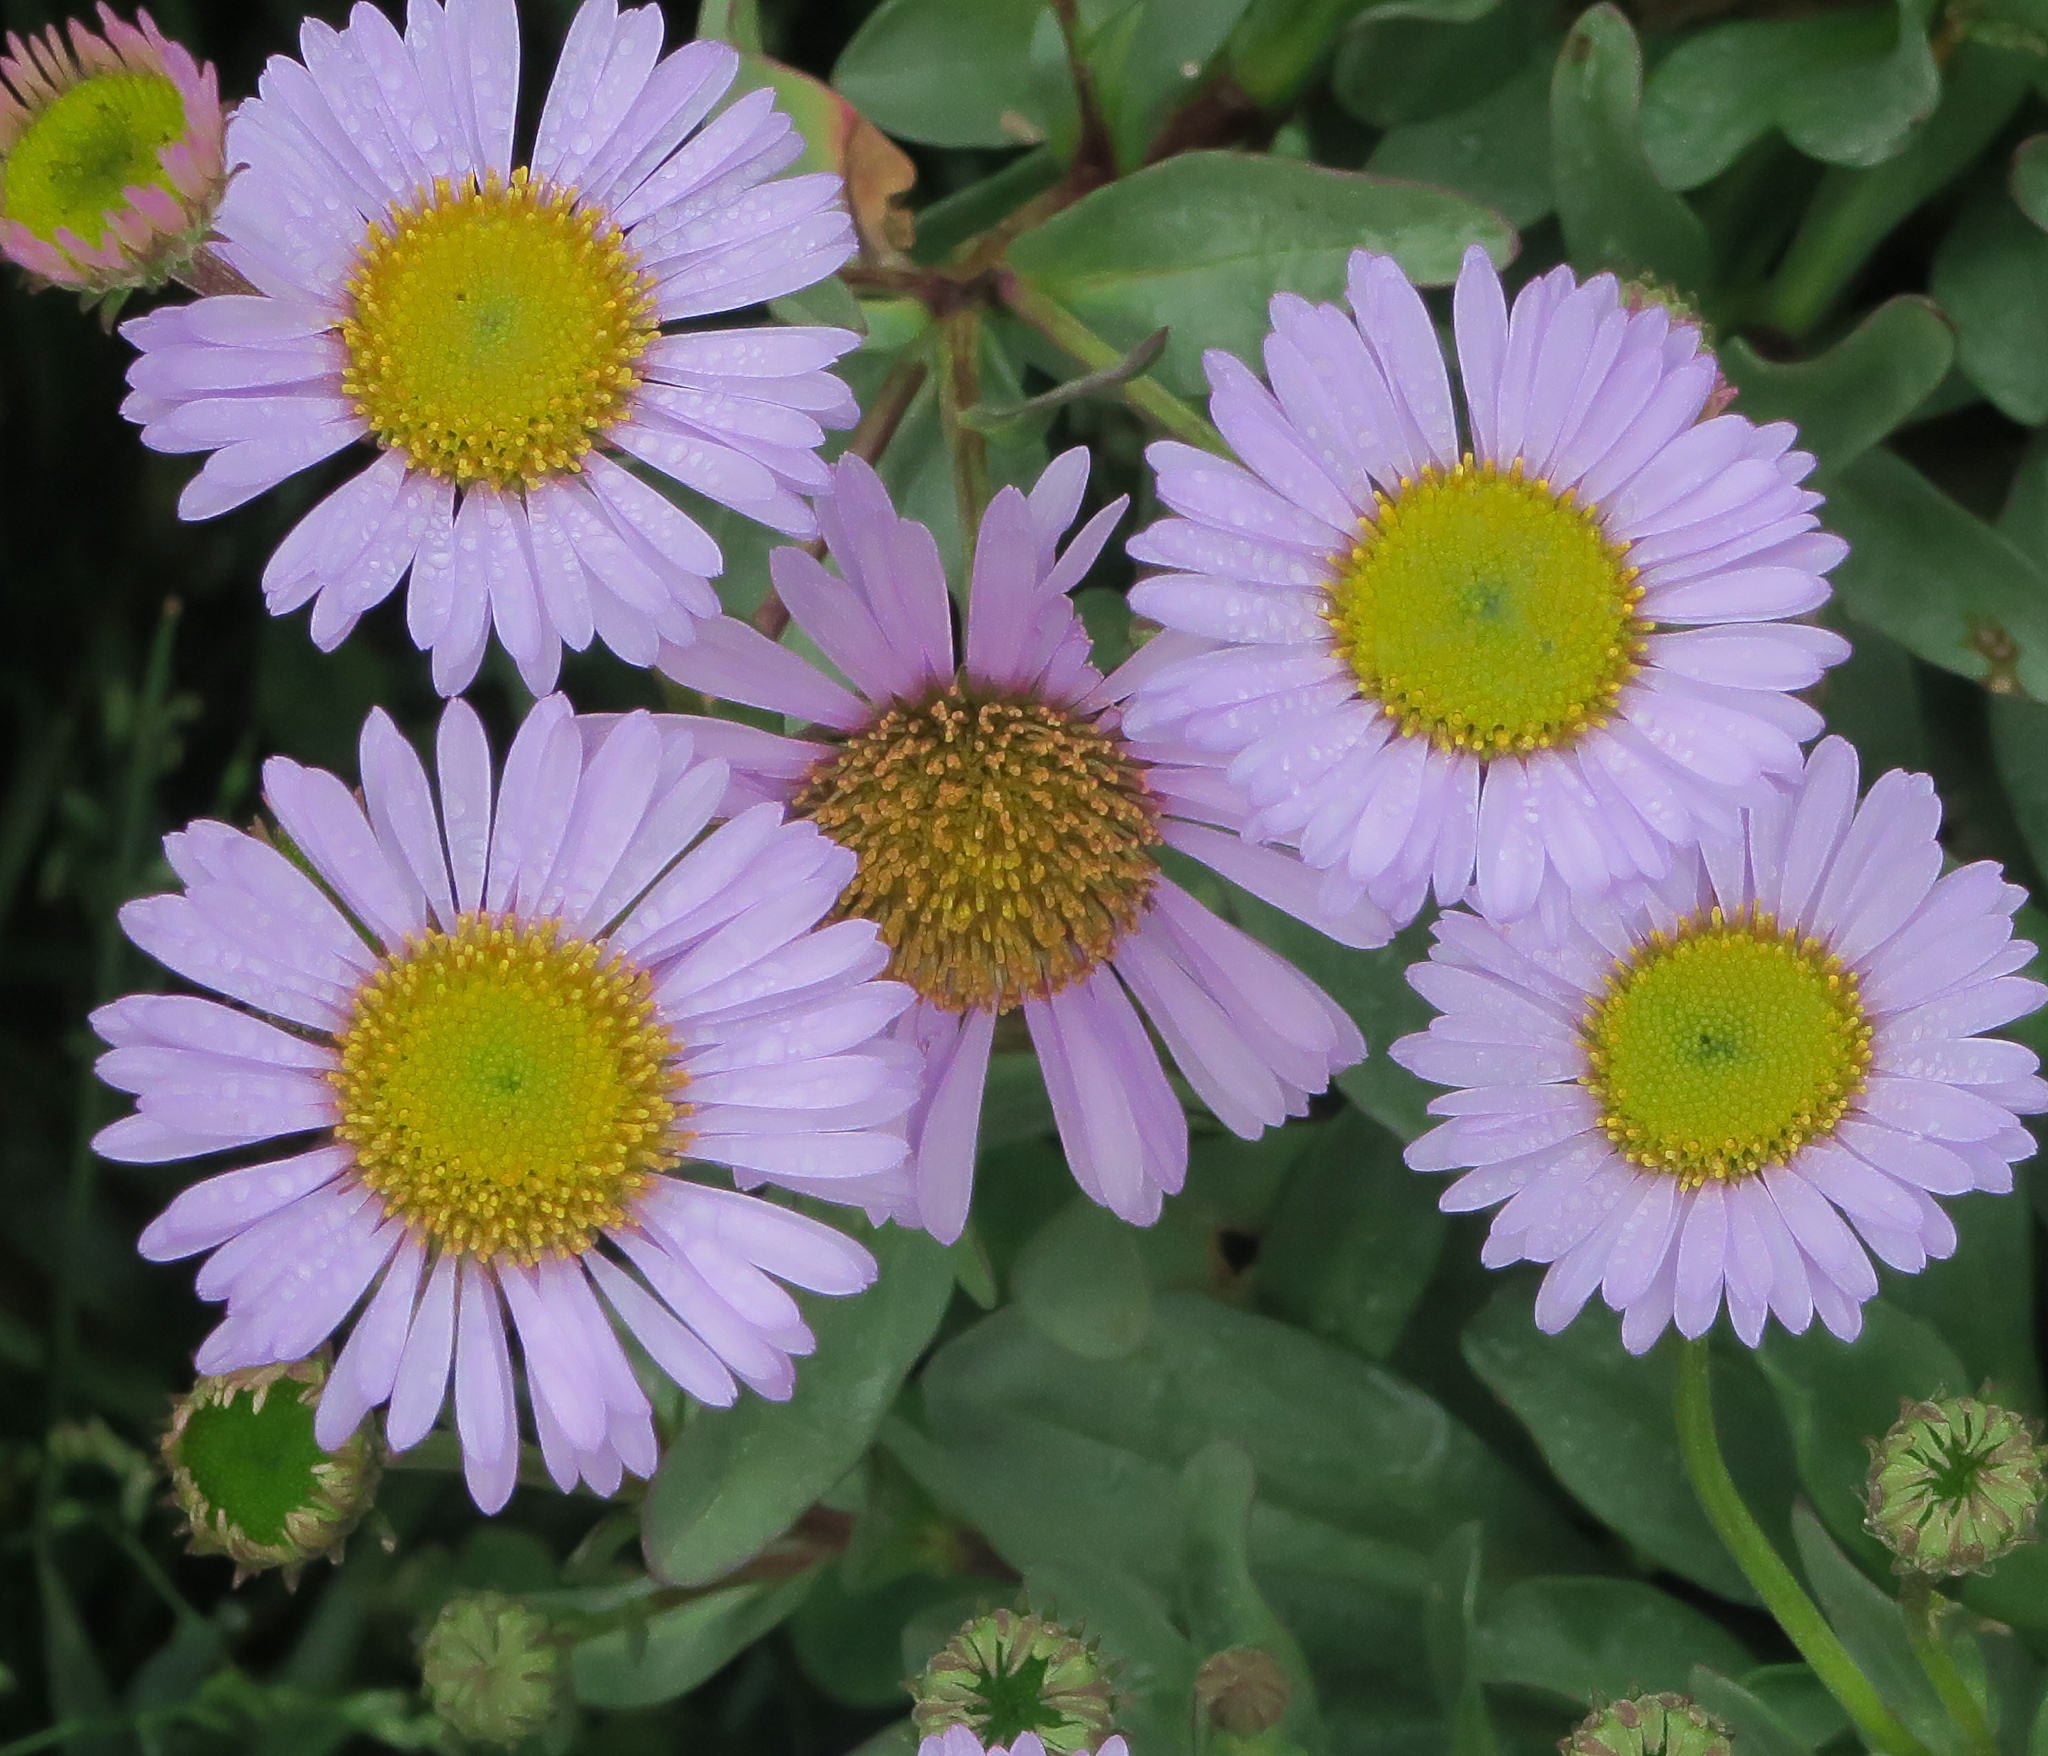 Erigeron 'WR'. Purple daisy-like flowers